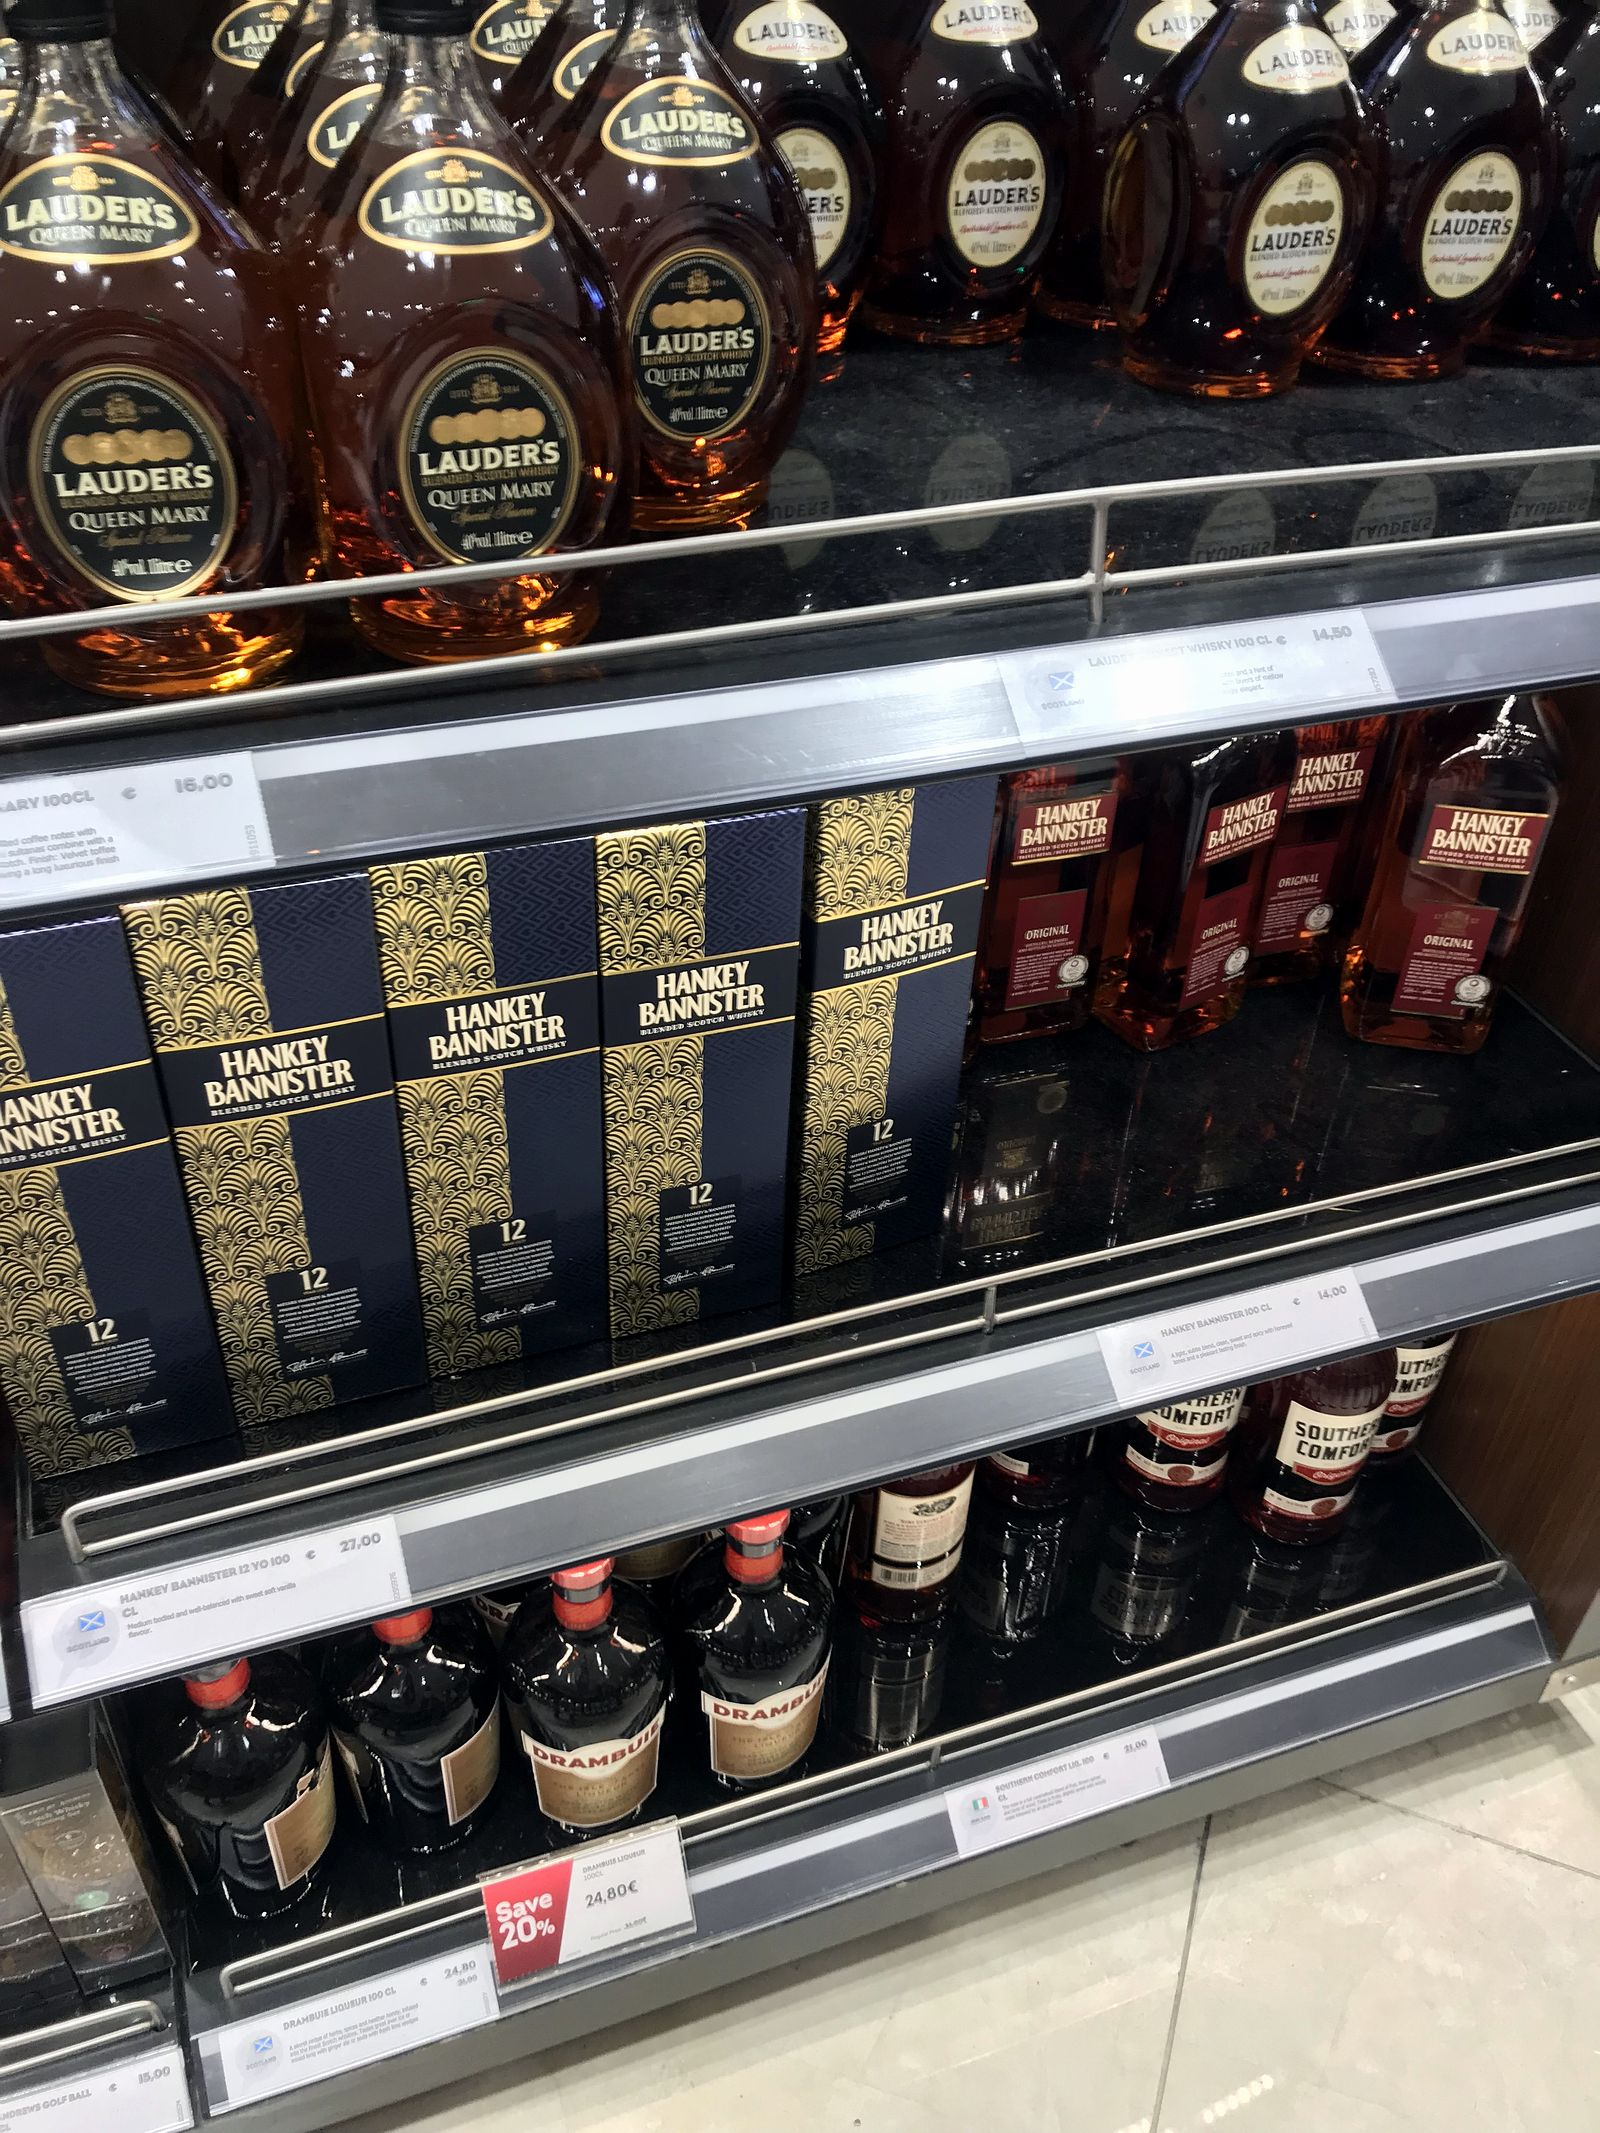 Duty free Antalya, august 2019, whiskey Layder's, Hankey bannister